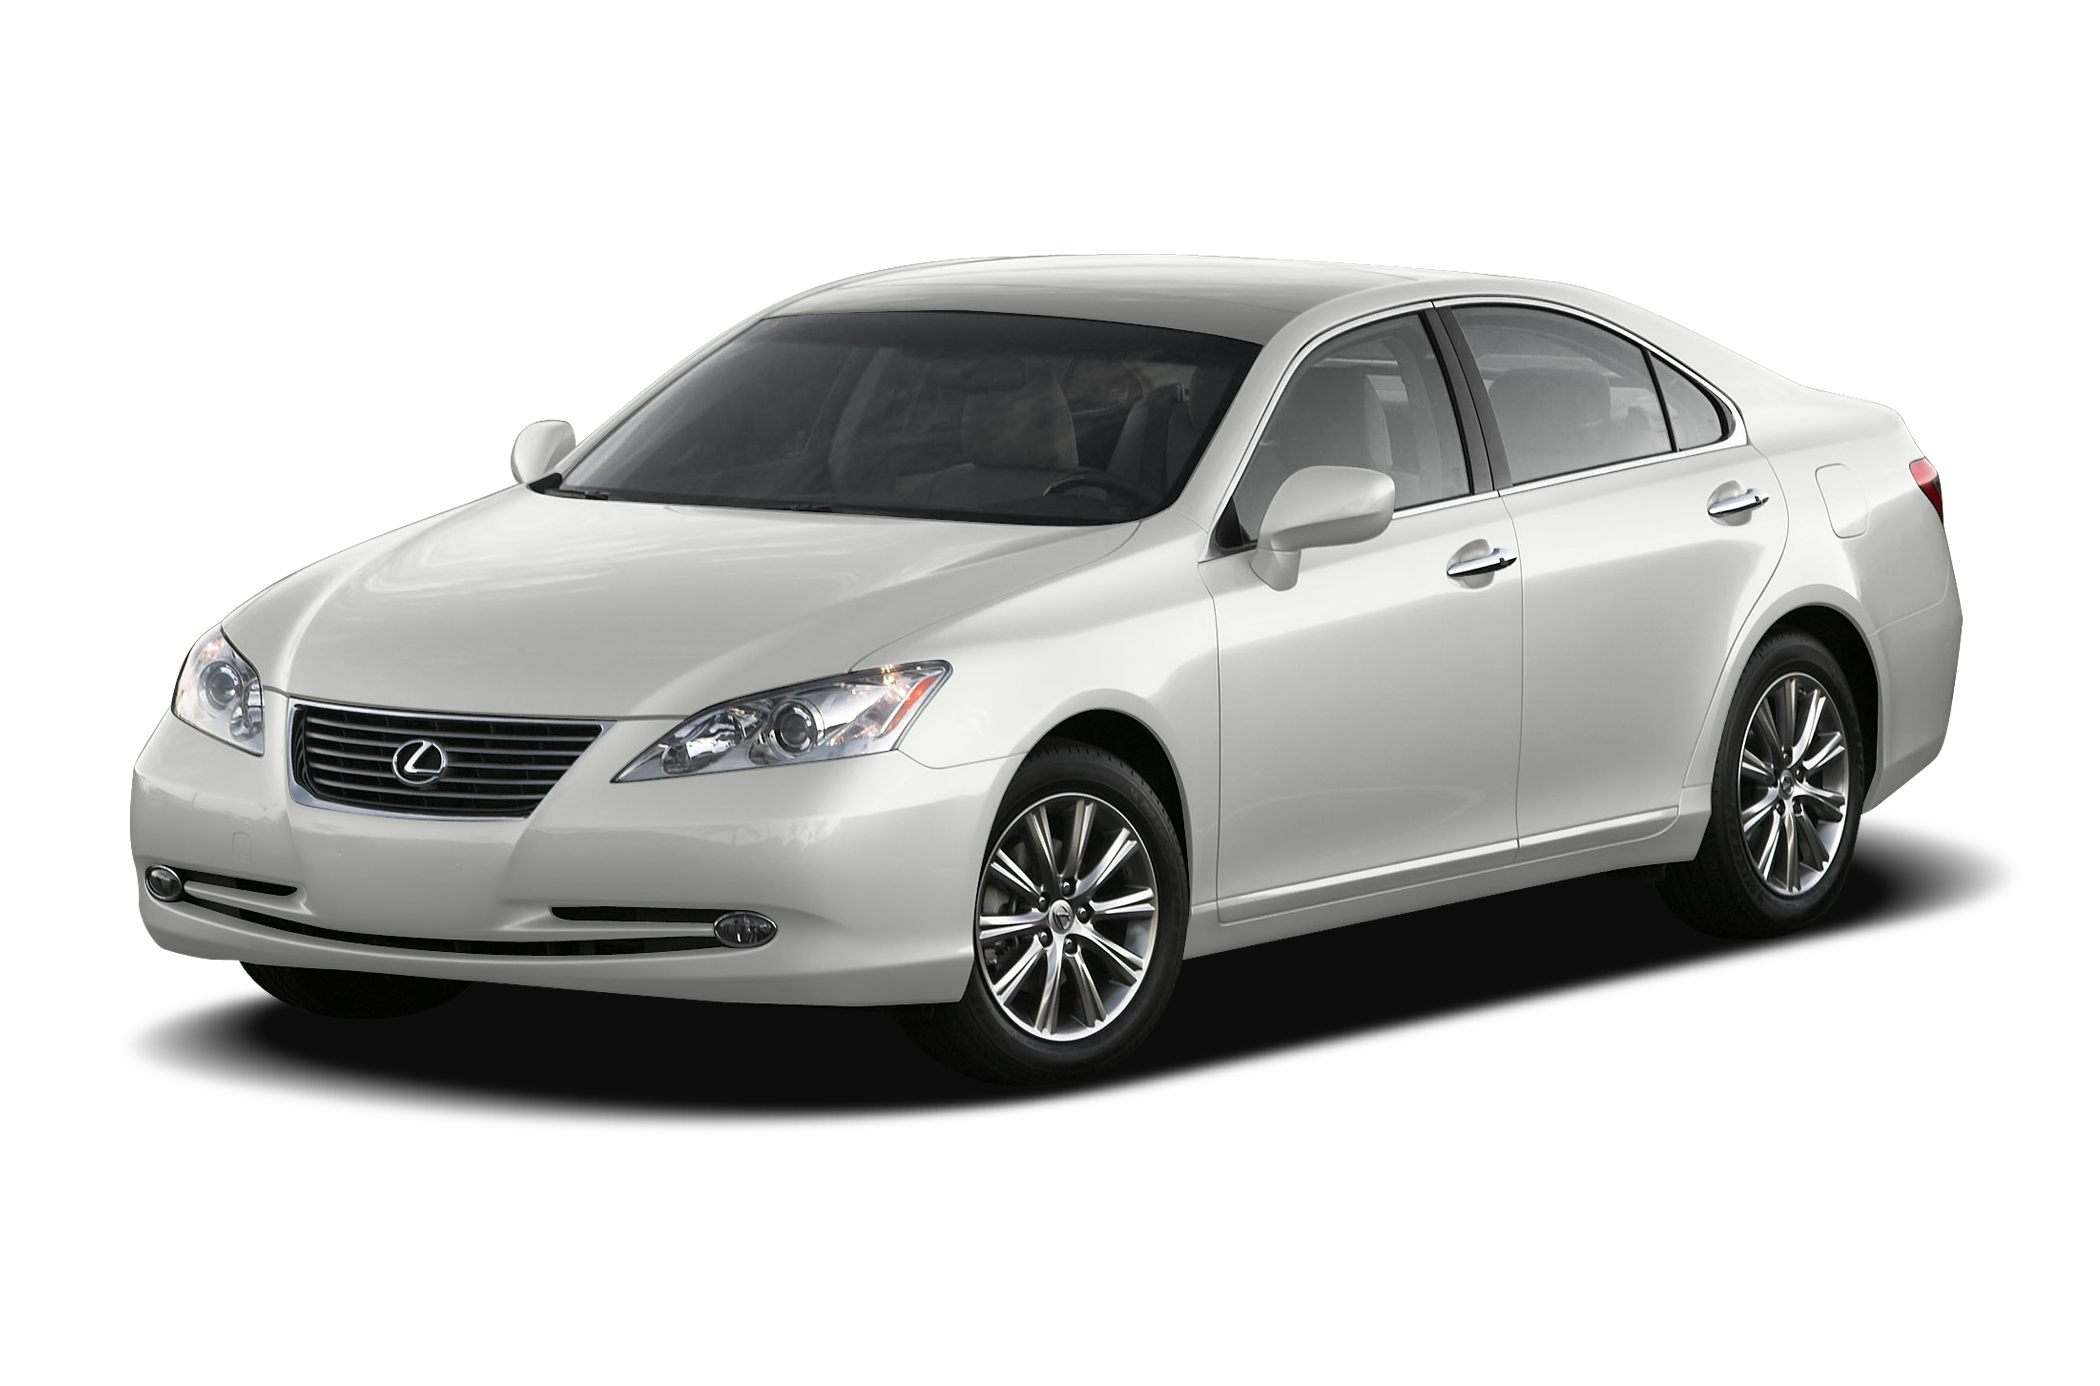 2007 Lexus ES 350 Base Includes a CARFAX buyback guarantee This gas-saving Luxury Vehicle will